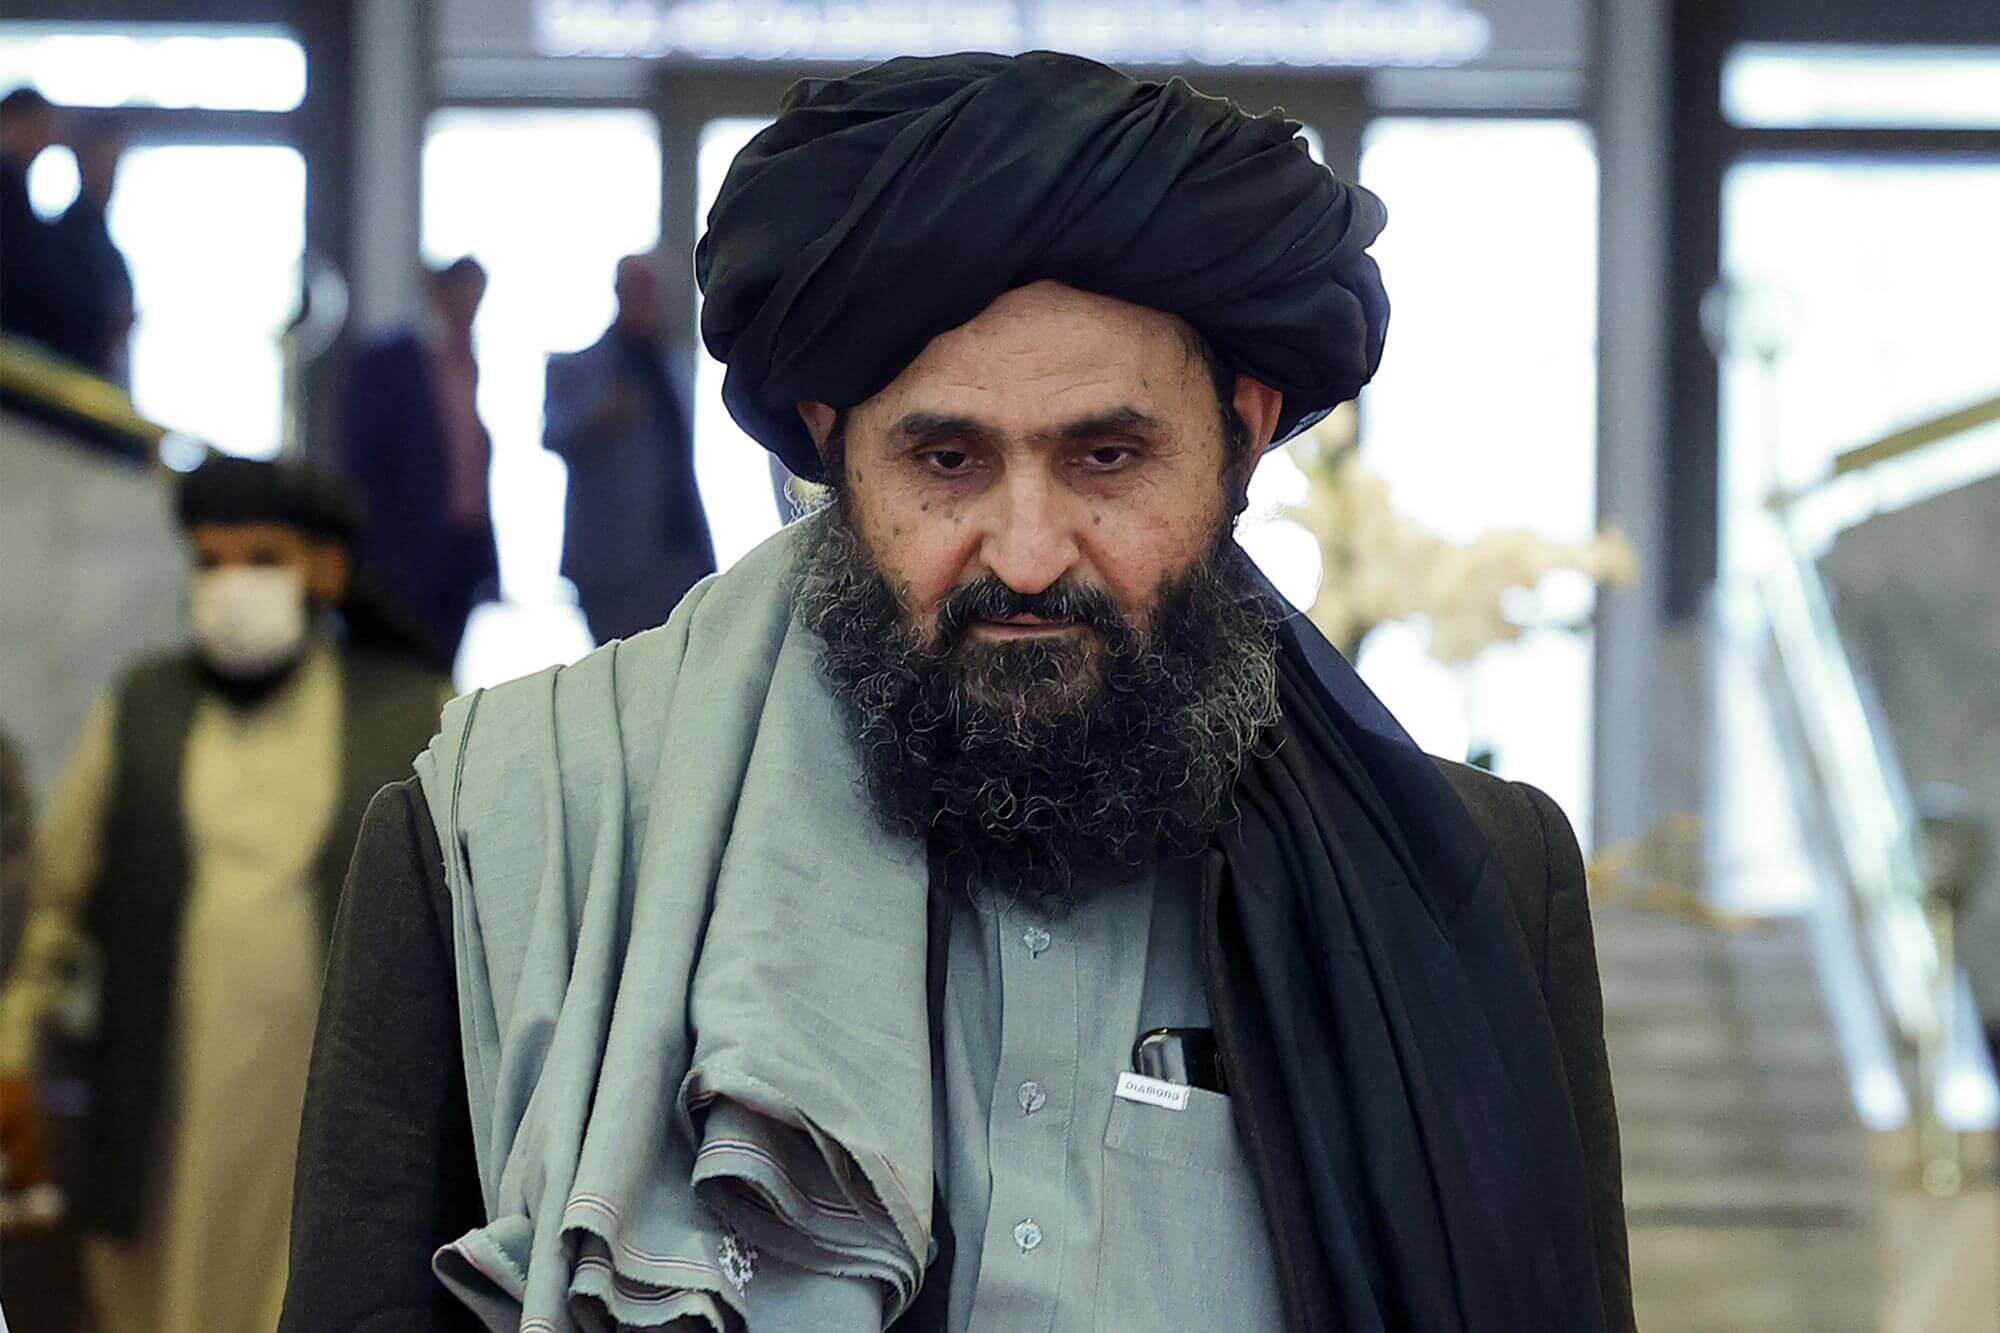 Taliban co-founder Mullah Baradar to lead new Afghanistan government